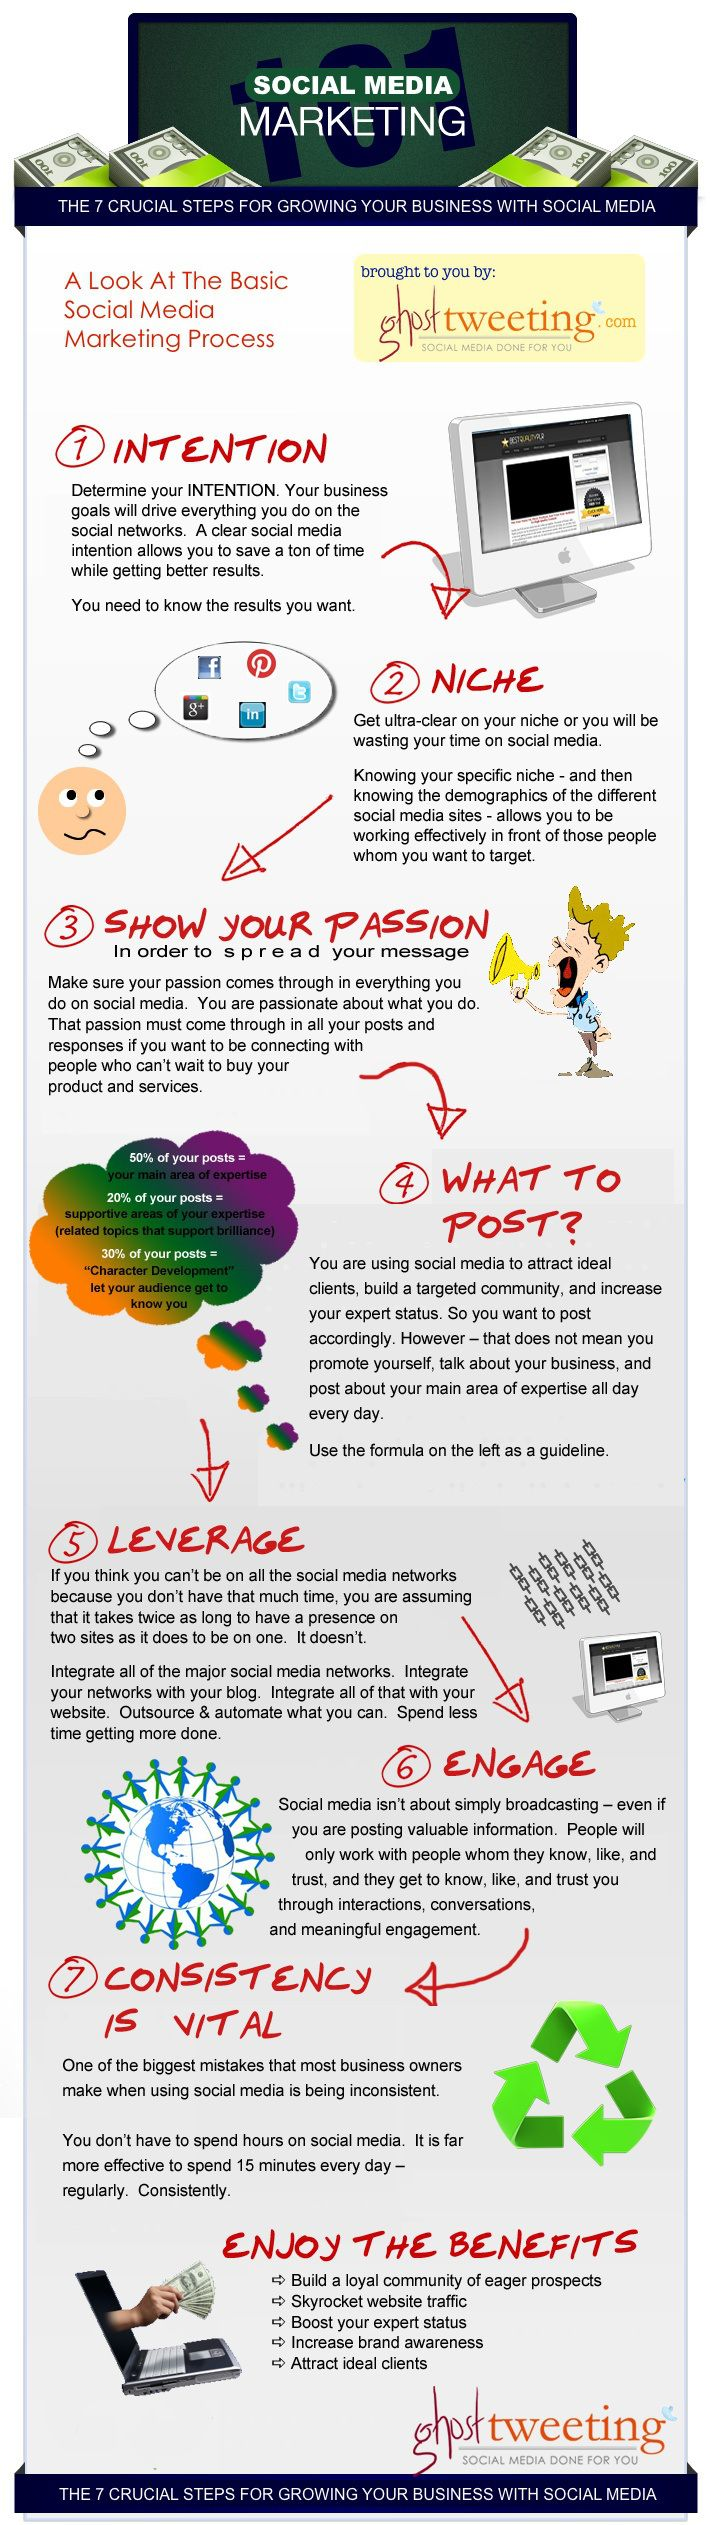 The 7 crucial steps for growing your busineee with Social Media #infografia #infographic #marketing